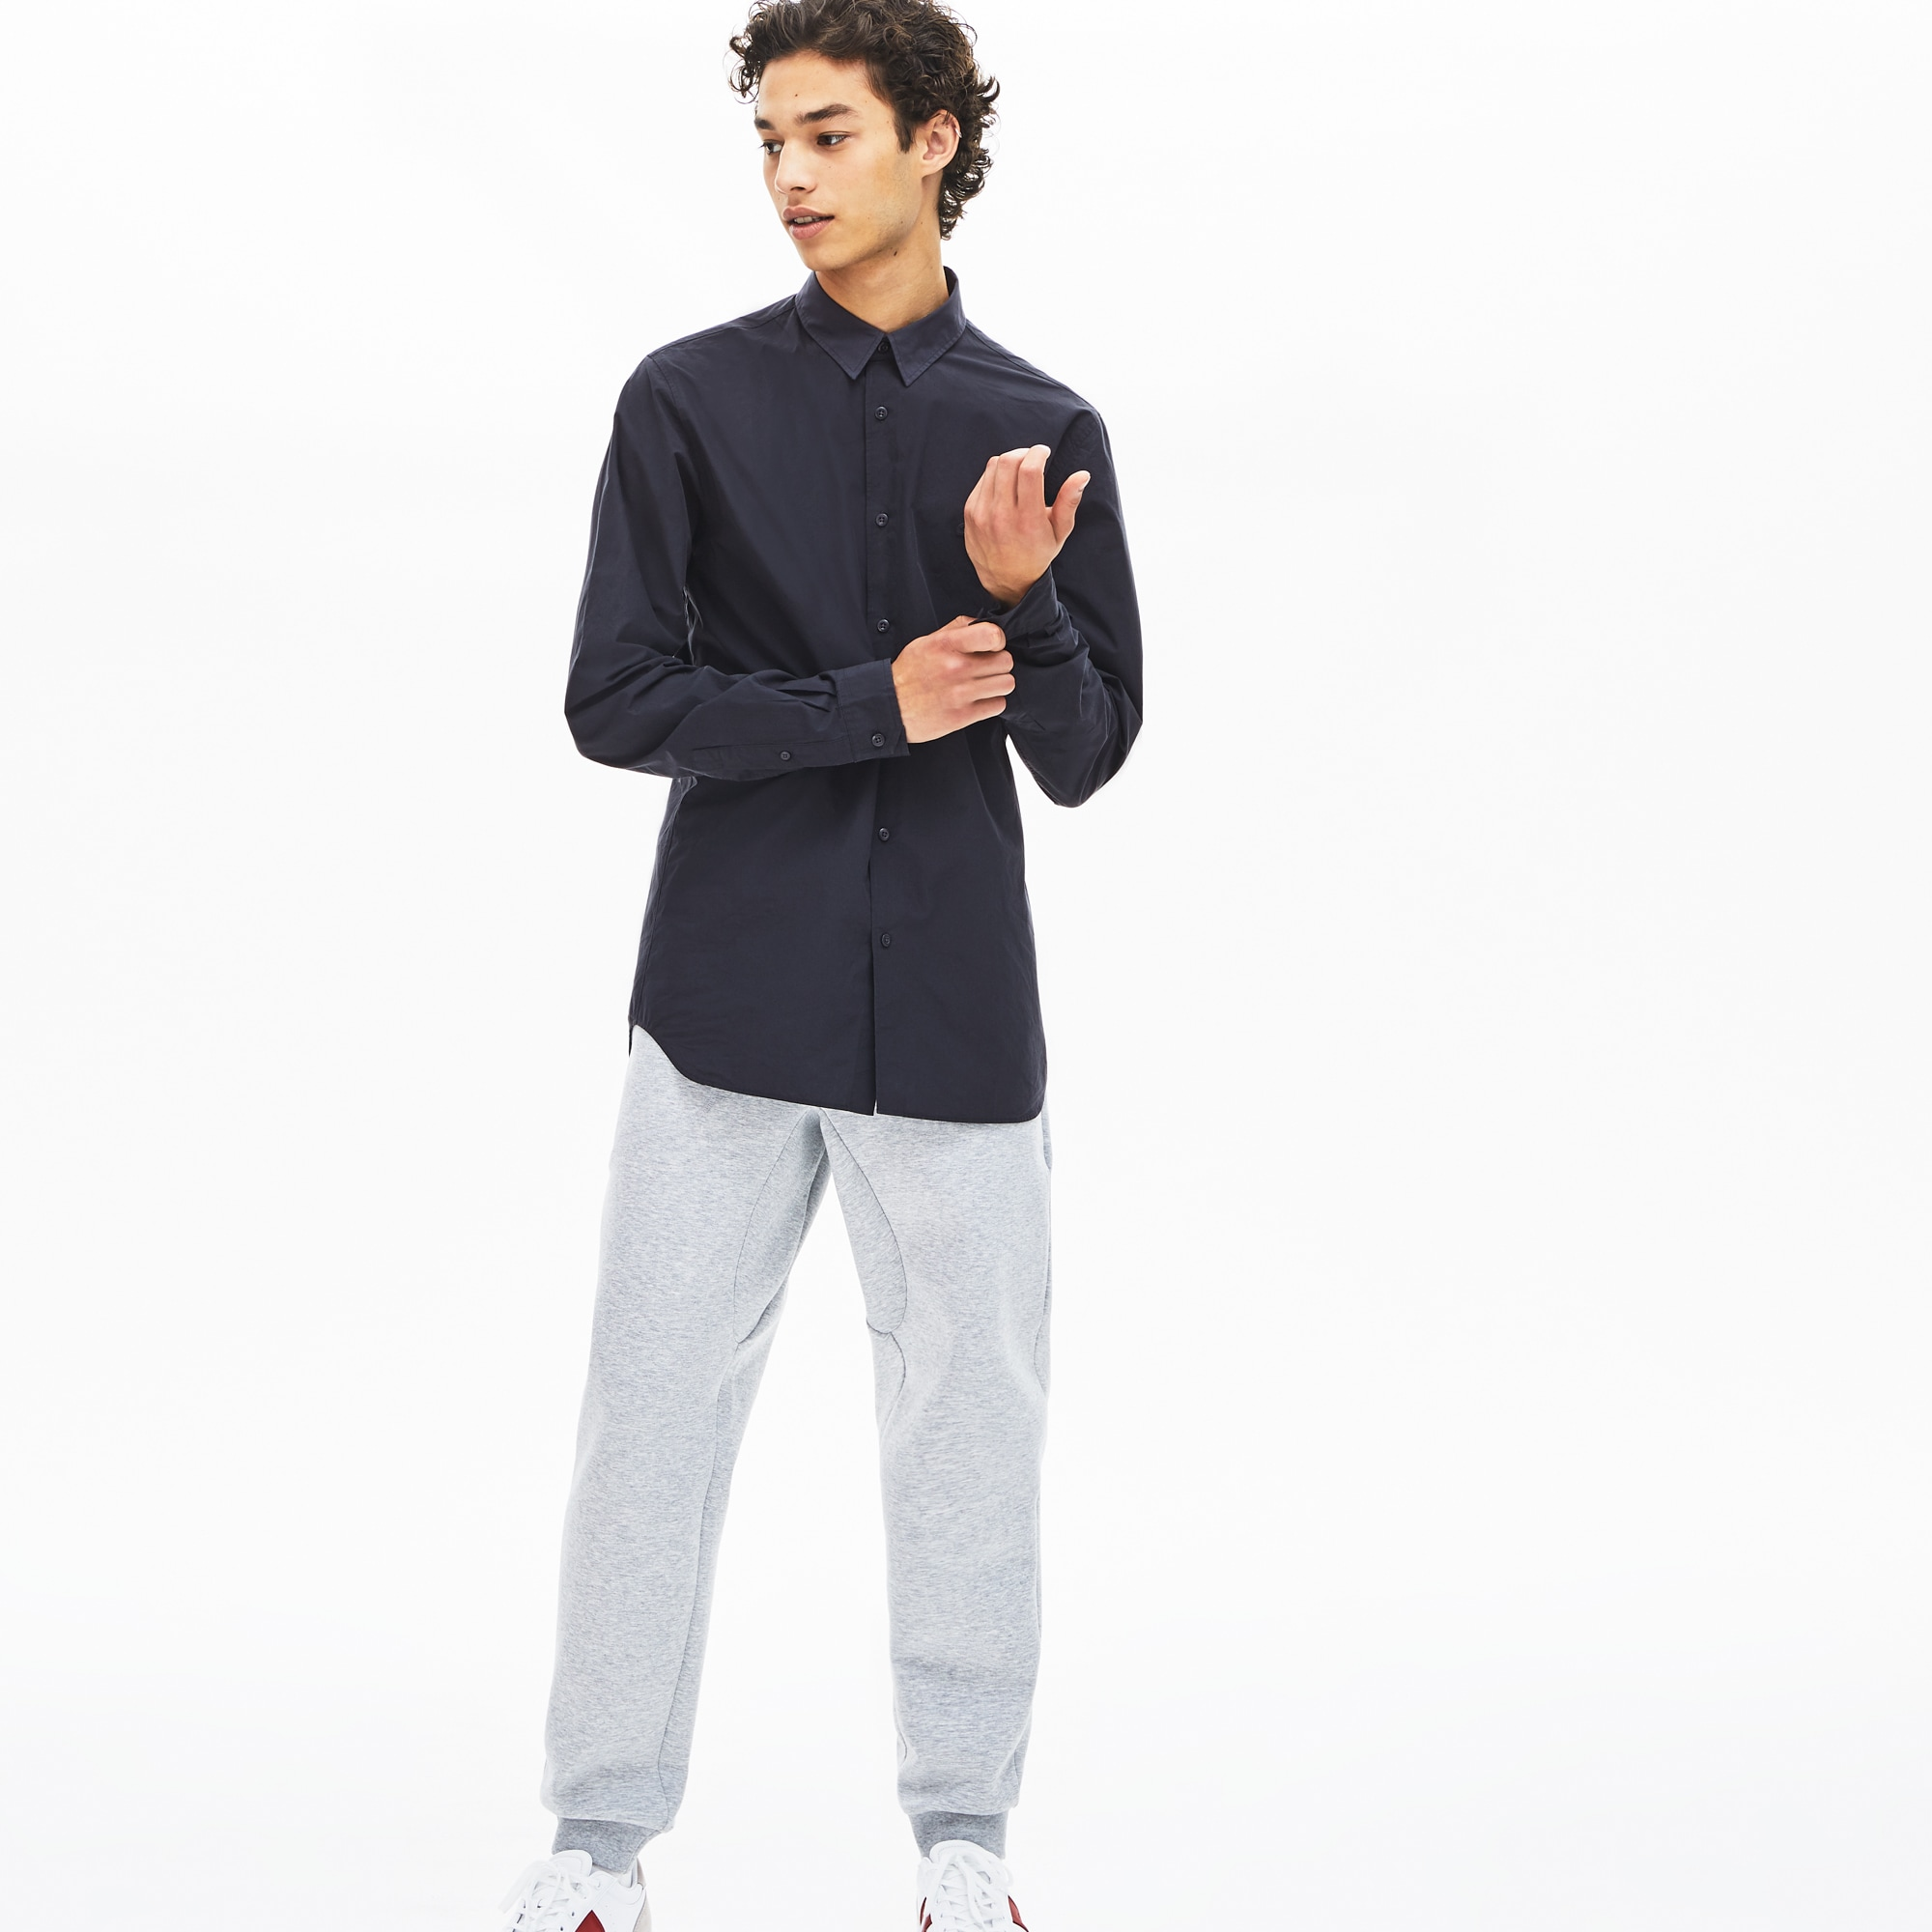 Men's Motion Ergonomic Paneled Stretch Cotton Shirt